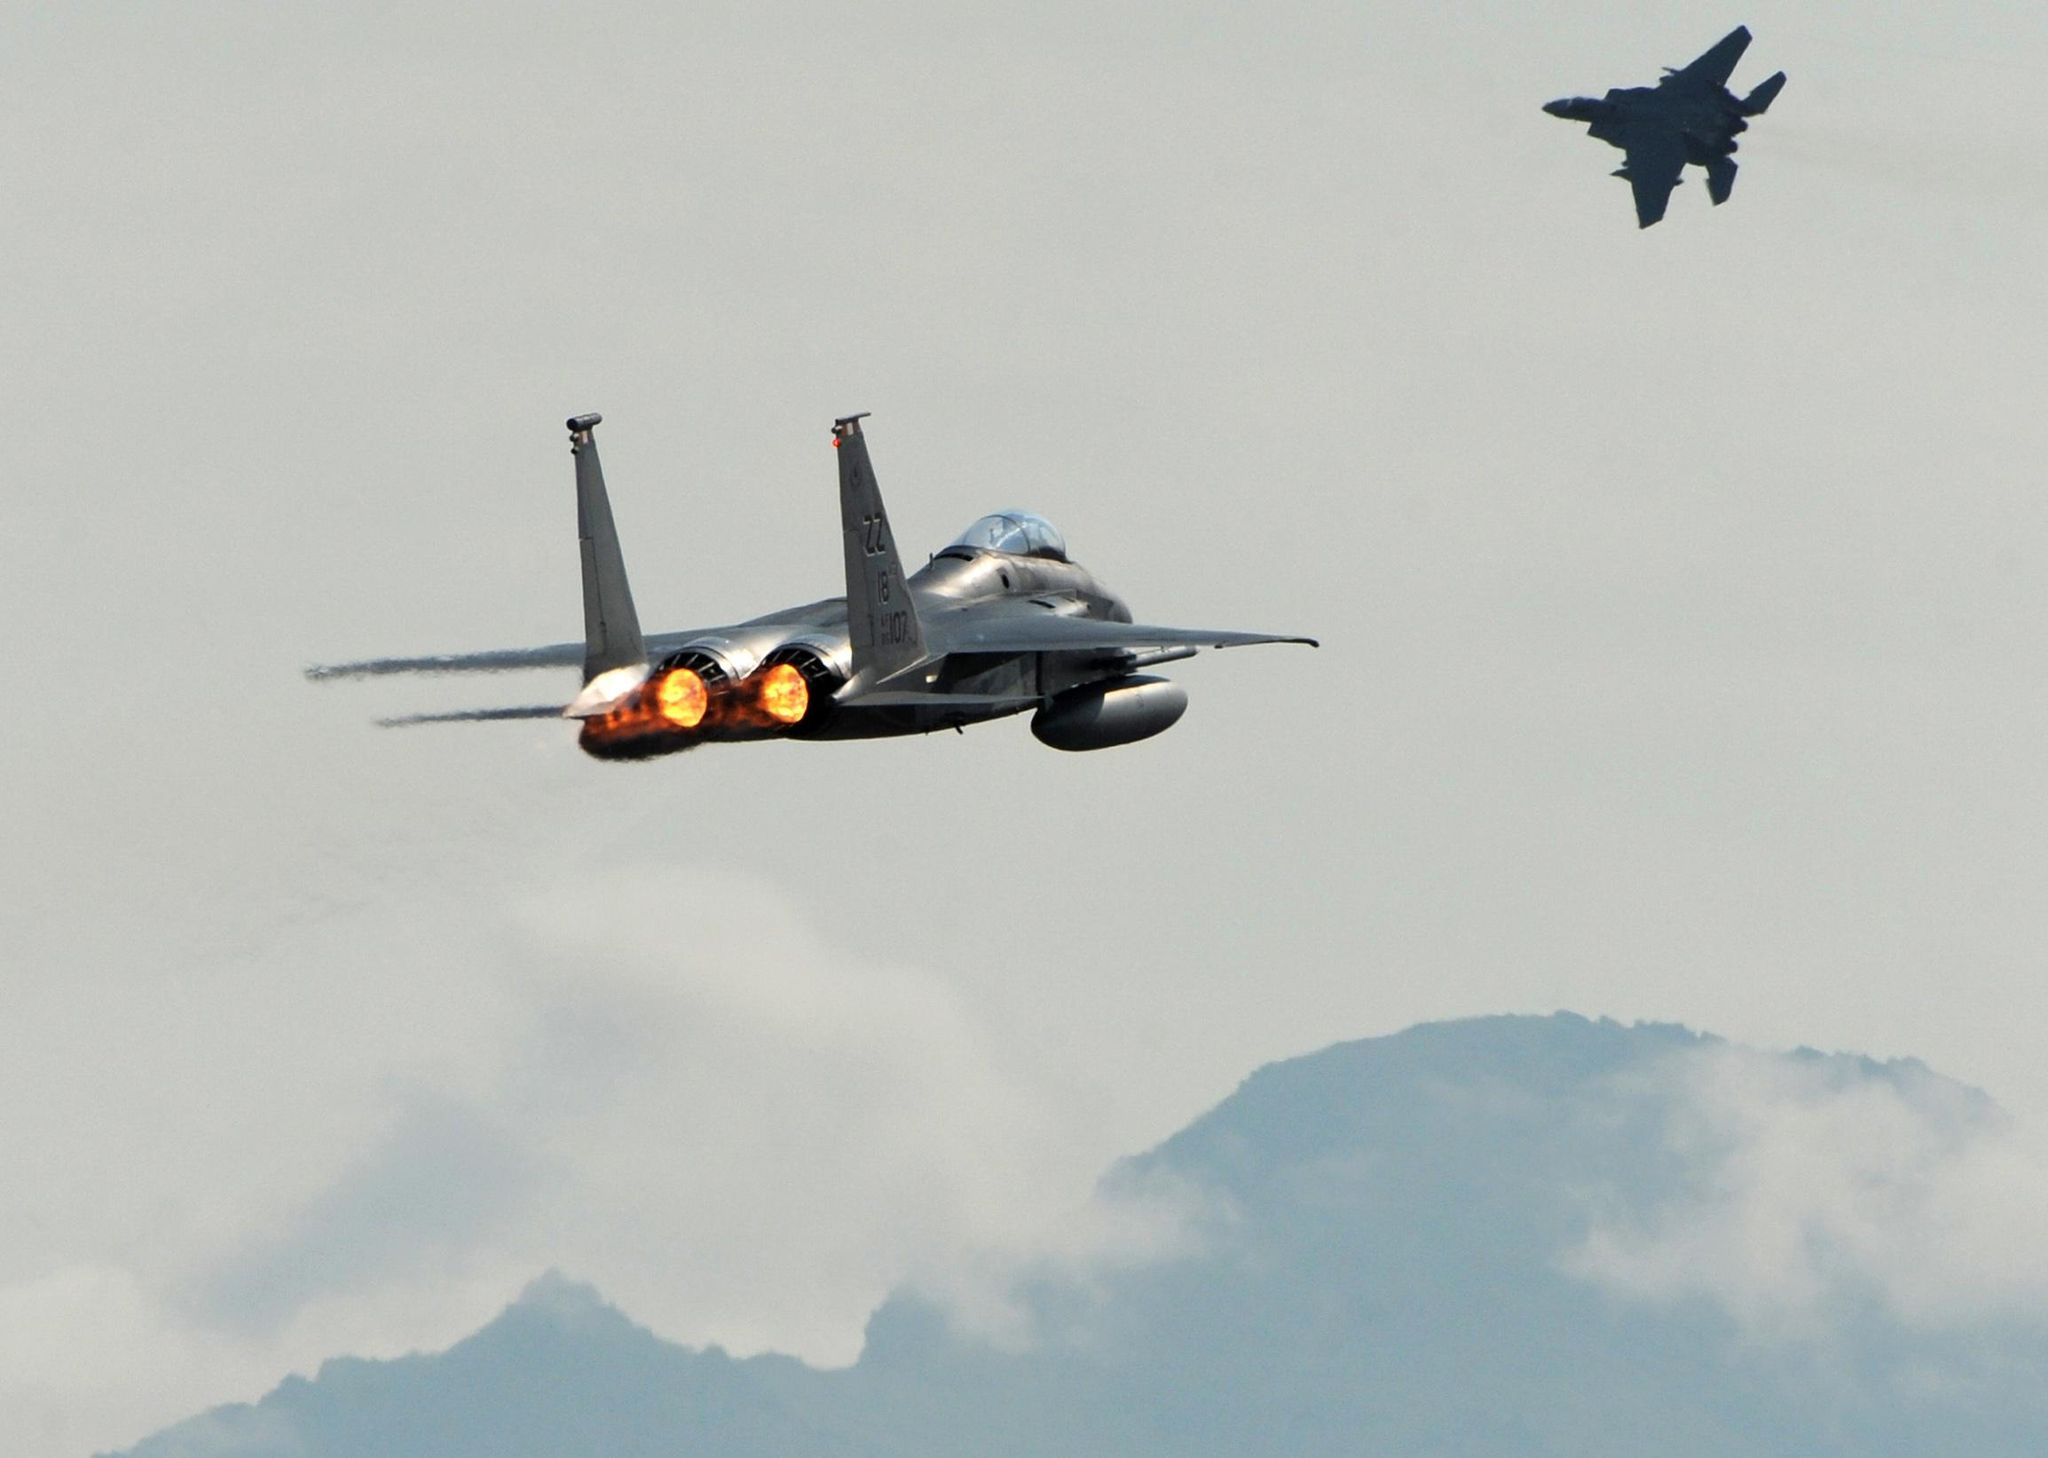 The only reason F-15s are going to Syria is to shoot down Russian jets